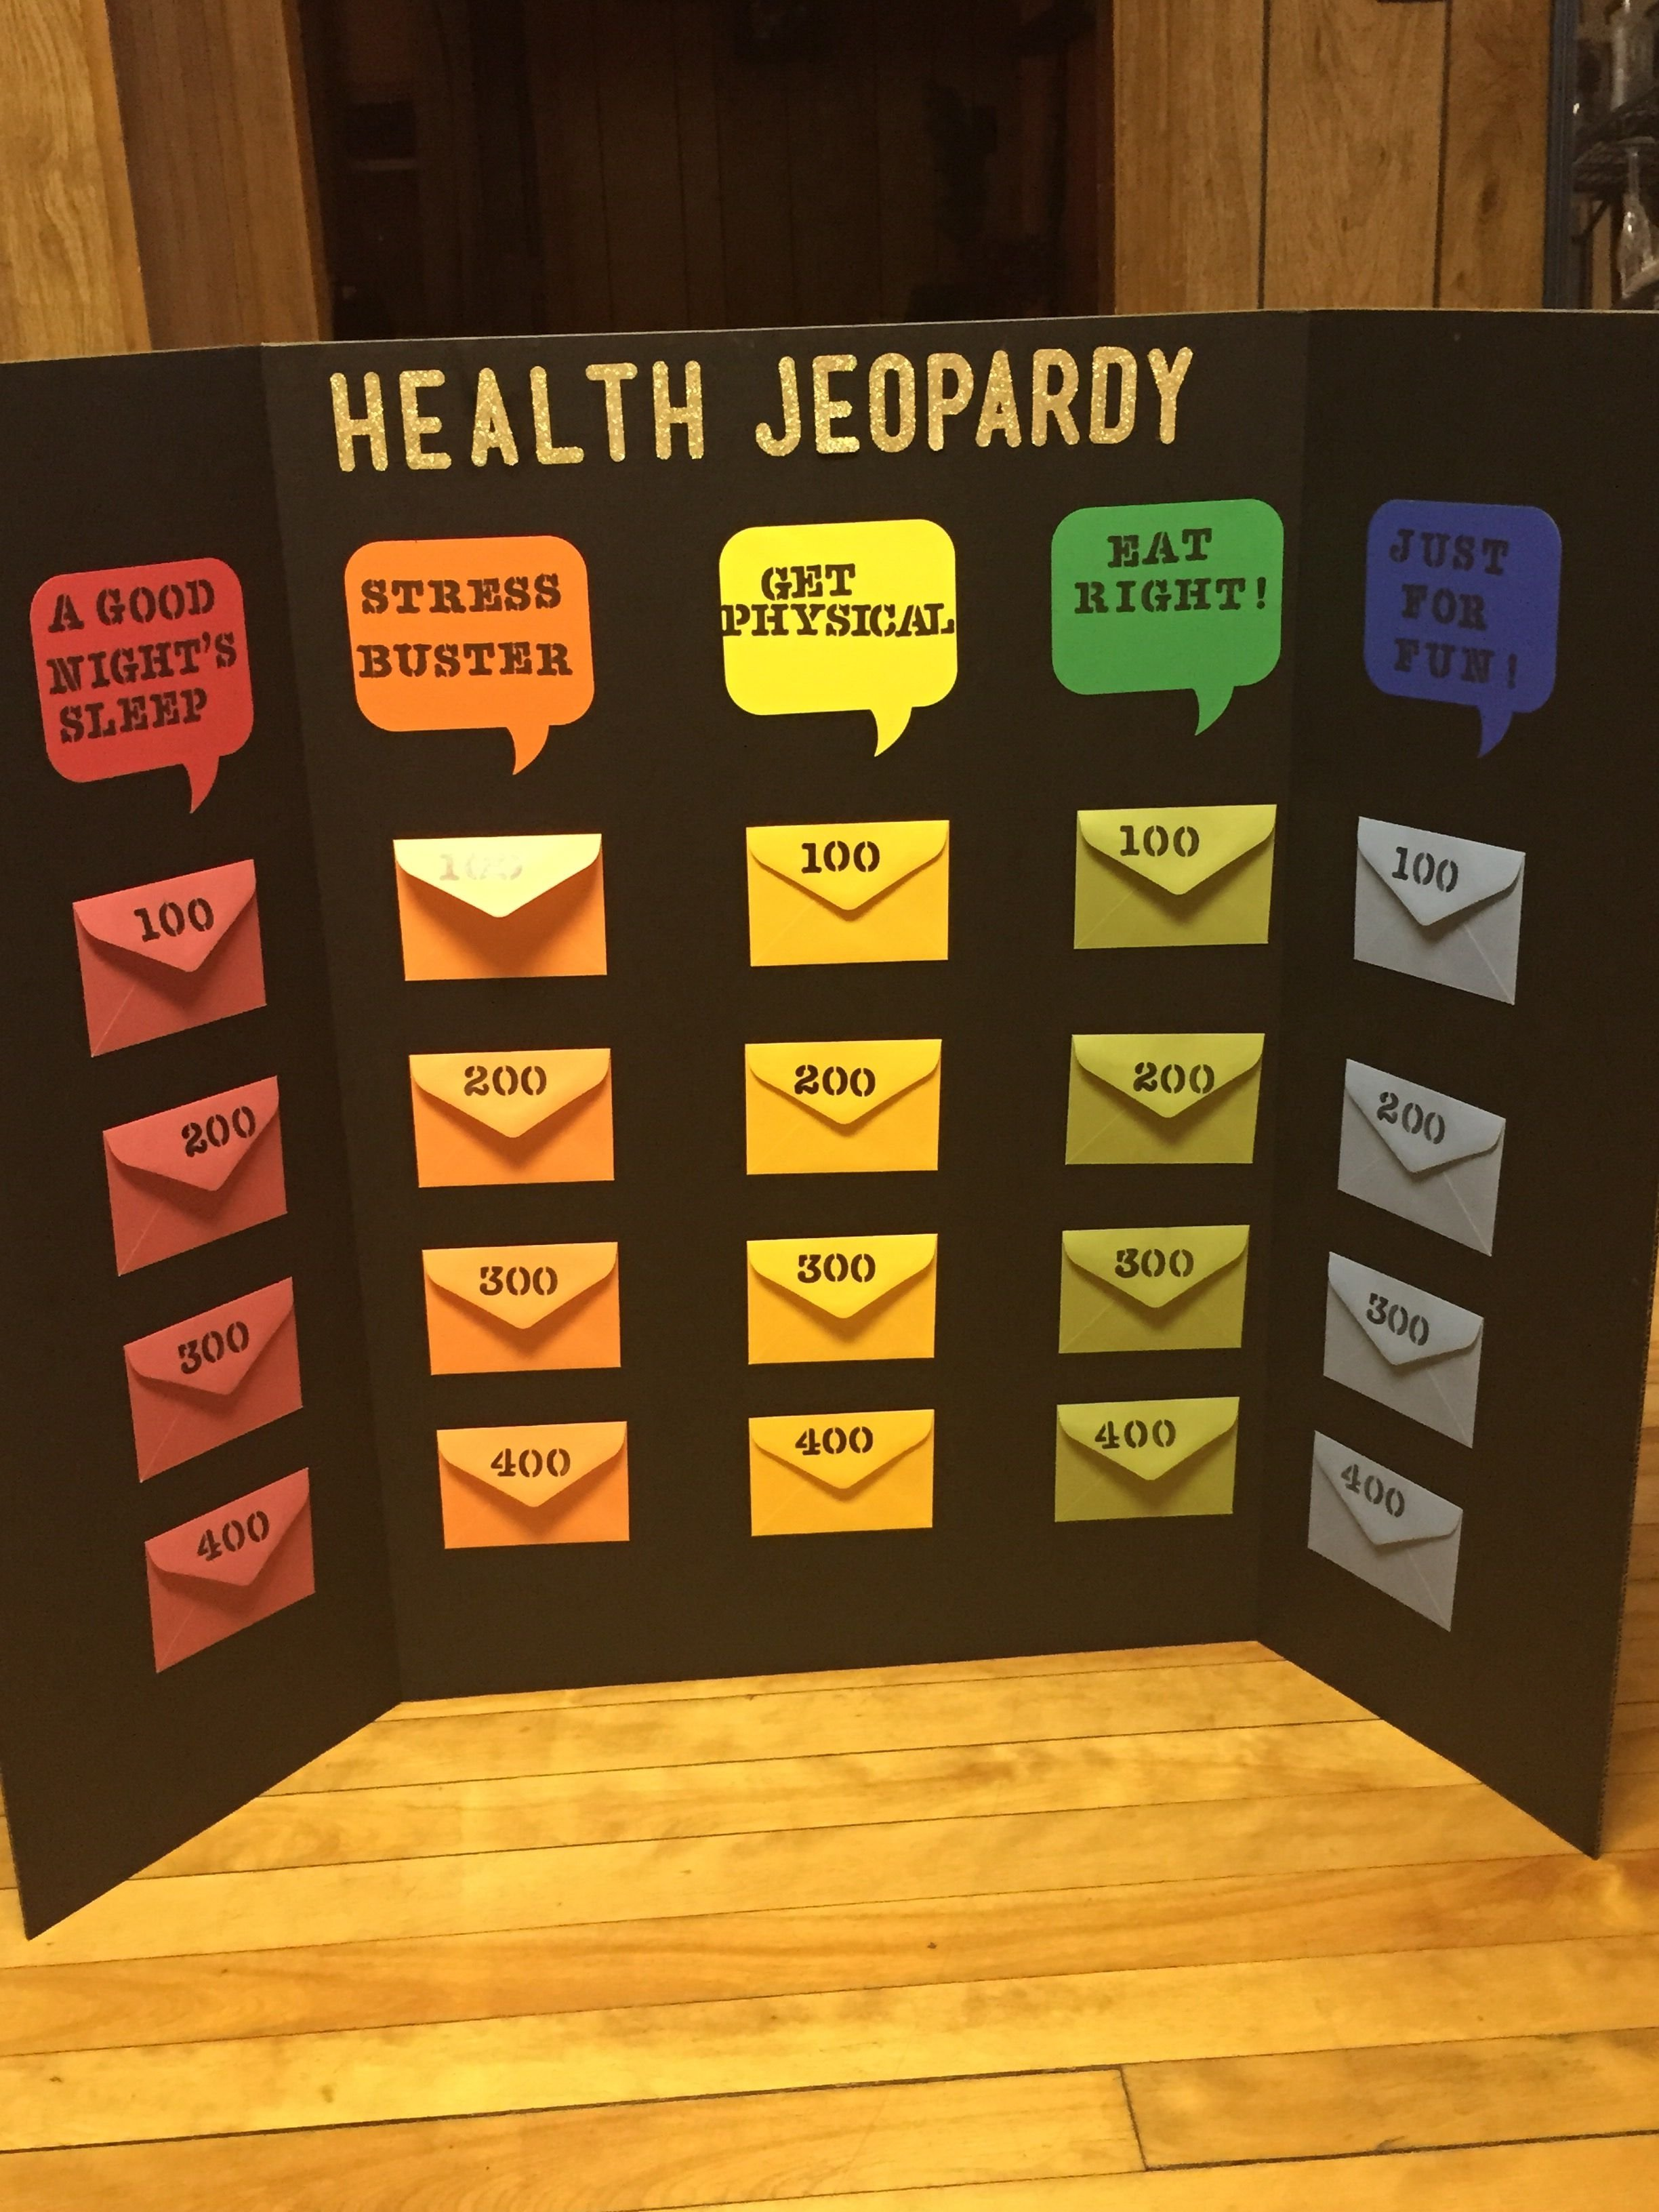 10 Stylish Health Fair Ideas For Kids health jeopardy board game diy pinterest board gaming and 2021